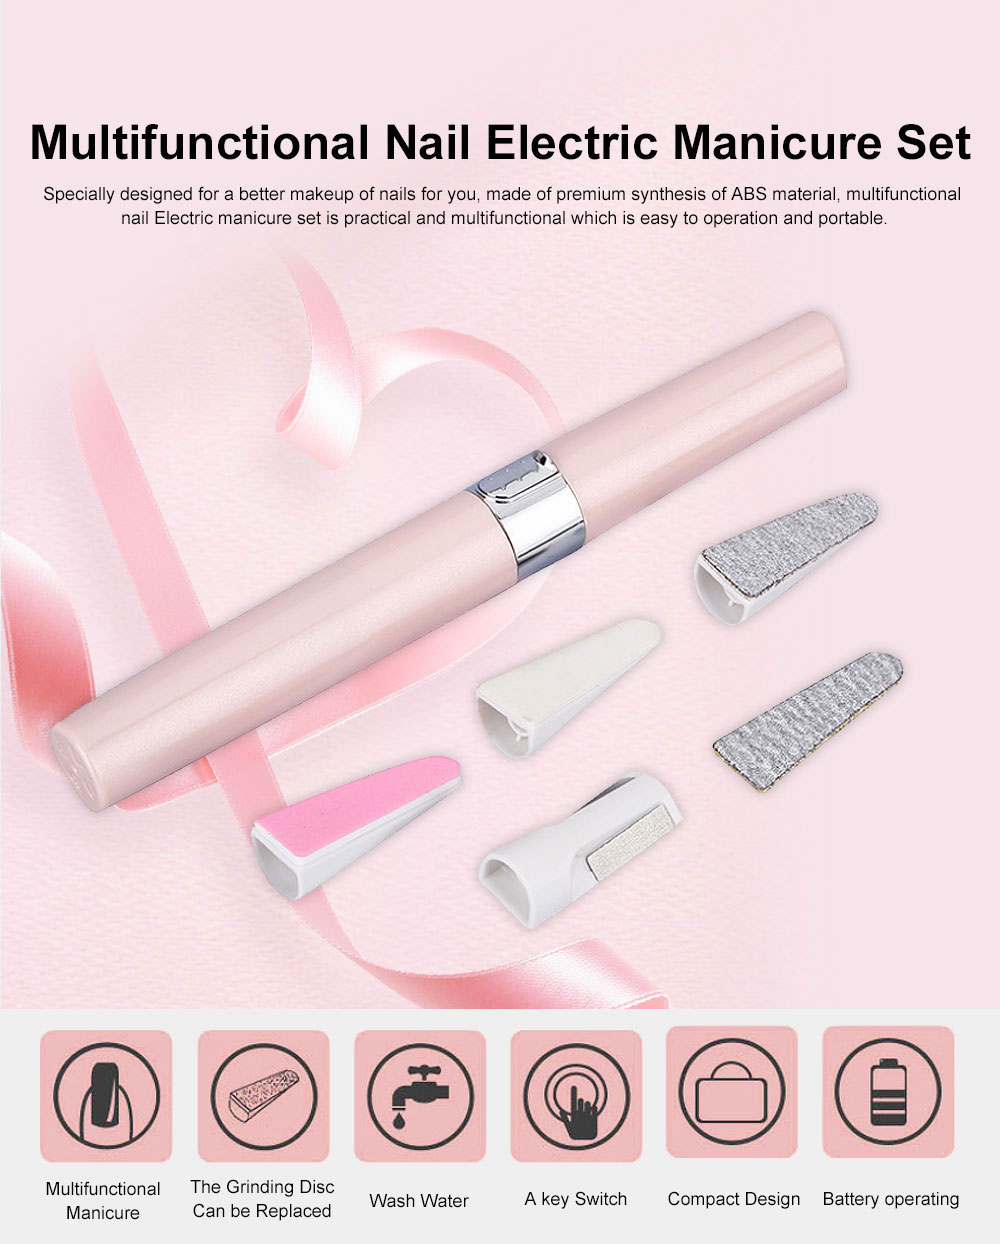 Small & Delicate Pen Type Multifunctional Nail Electric Manicure Set Used for Manicure Nails Polishing 0